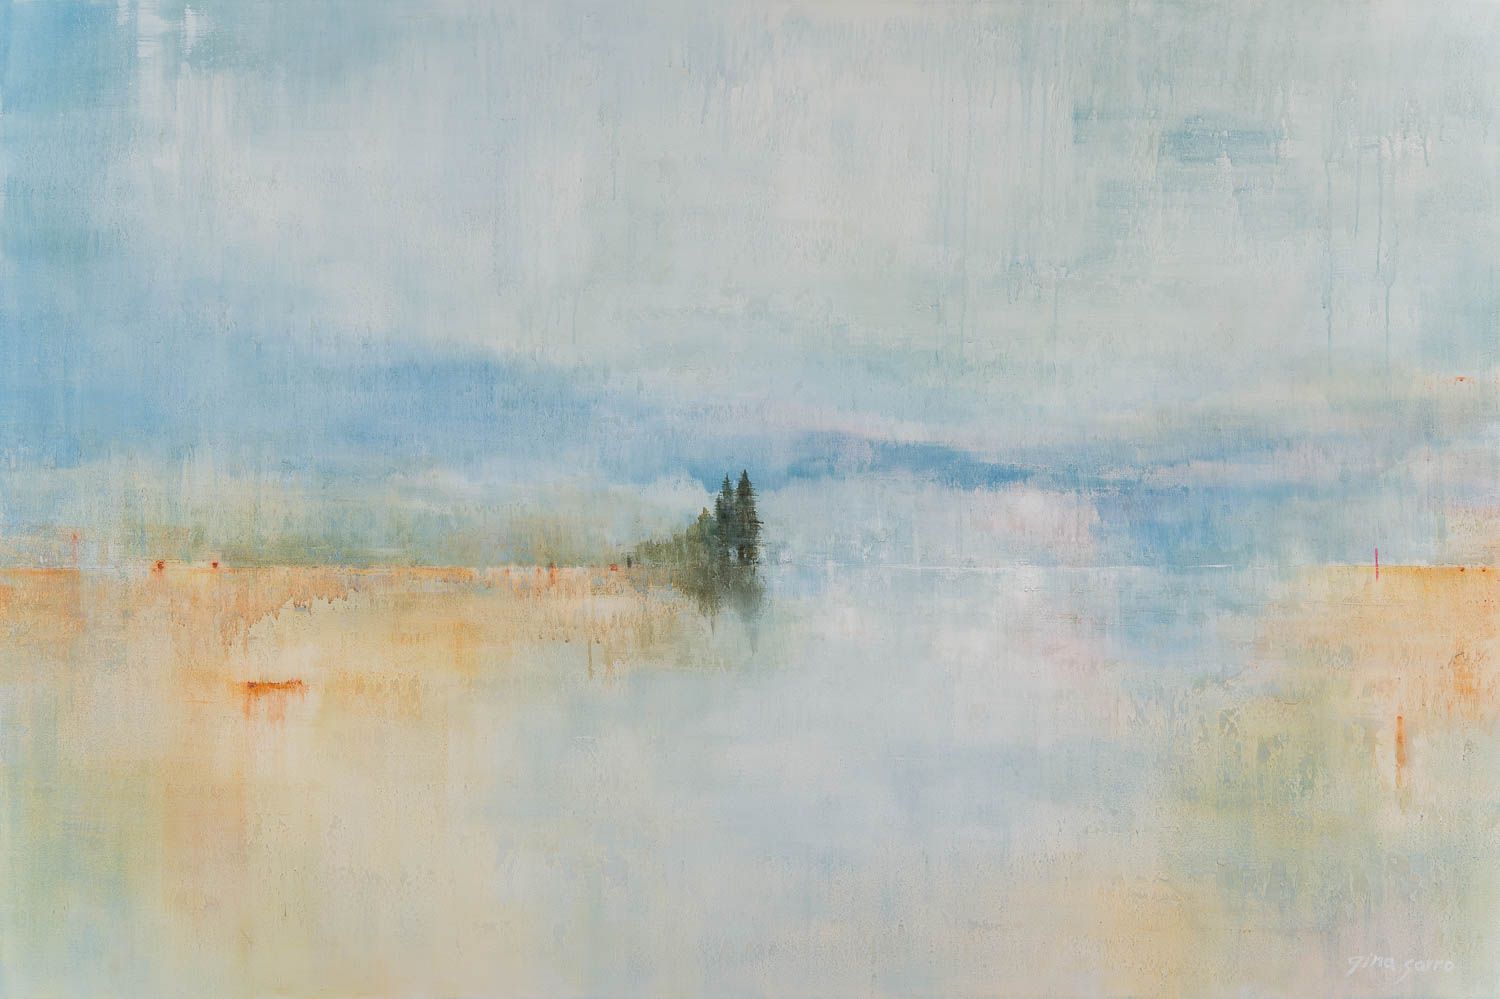 New Beginnings, acrylic landscape painting by Gina Sarro   Effusion Art Gallery + Cast Glass Studio, Invermere BC